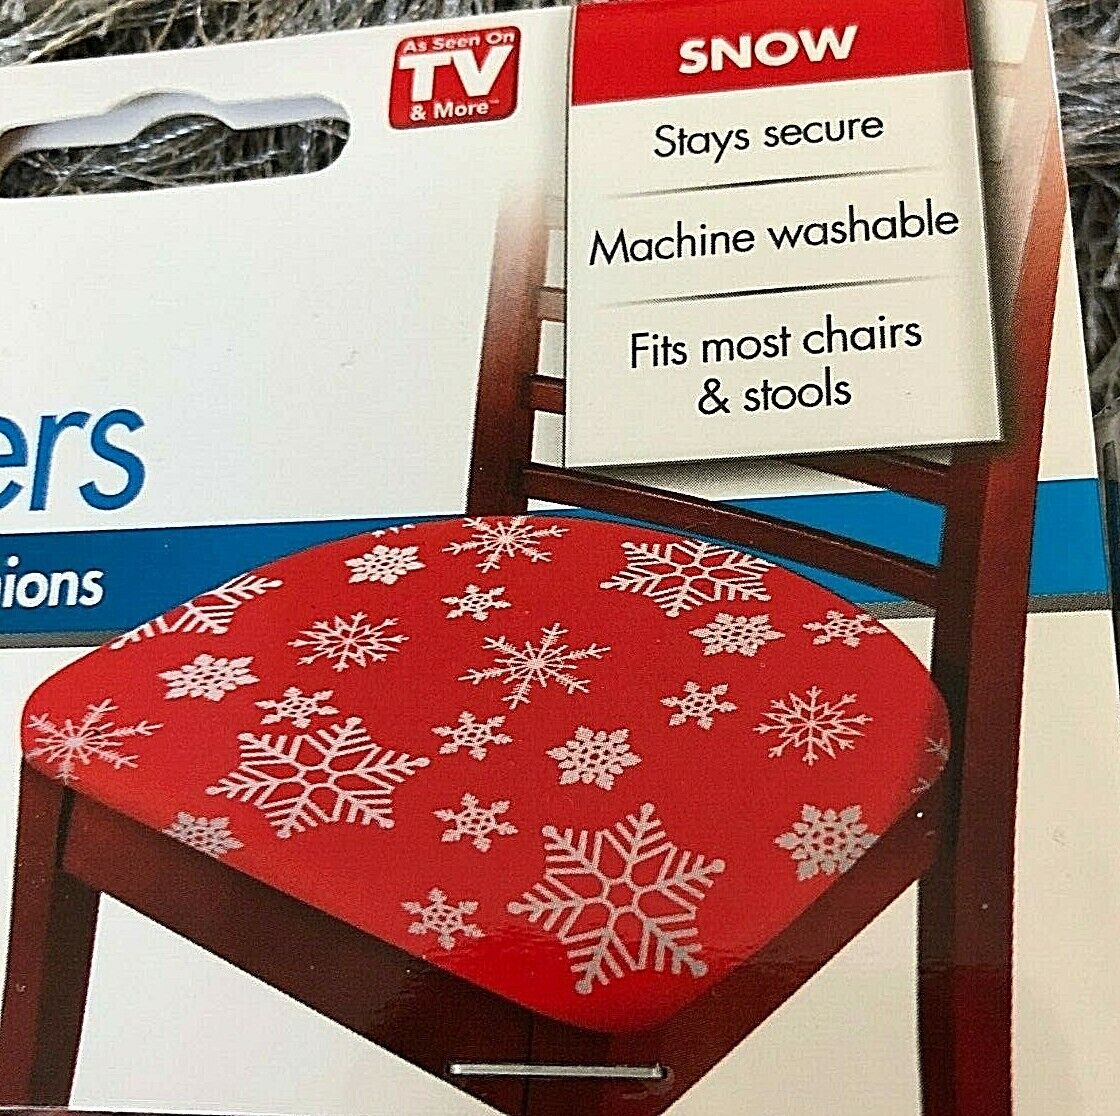 Christmas Stretch Seat Covers SET OF 2 Cover Protector (Spills Stain Torn) XMAS Furniture